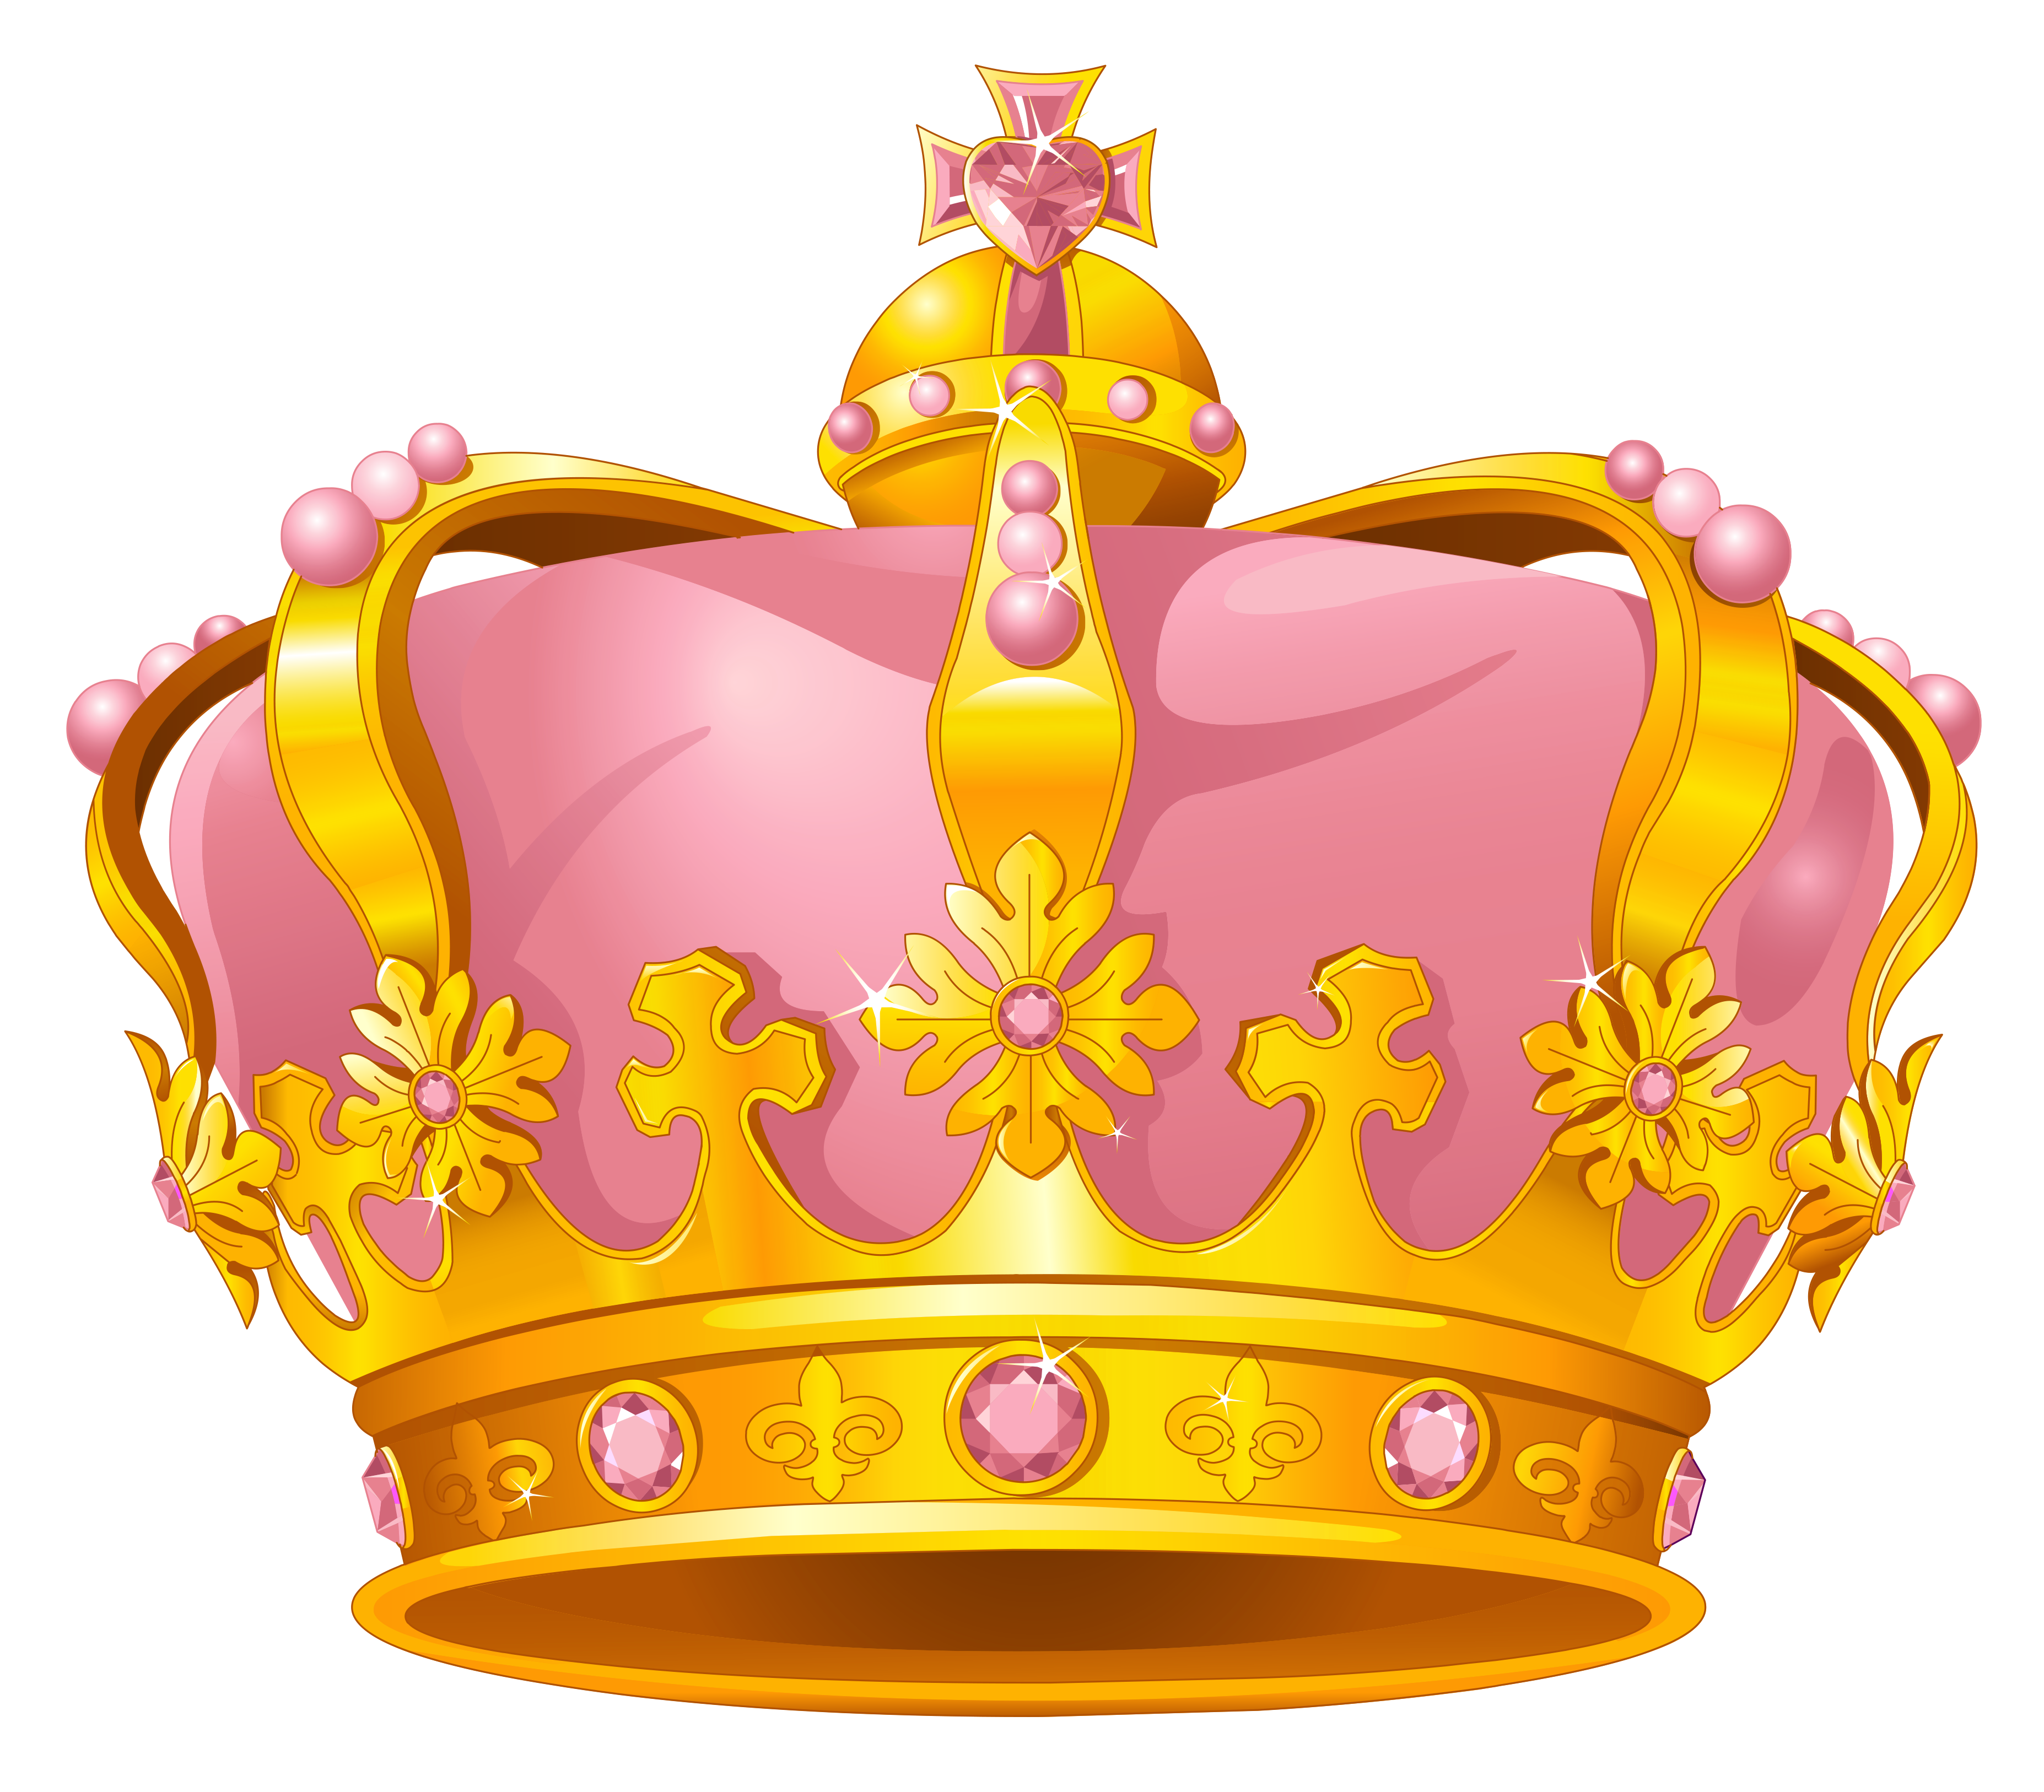 Crown clipart free download transparent library Crown Gold Pink Clip art - Golden Pink Crown PNG Clipart 3709*3252 ... transparent library